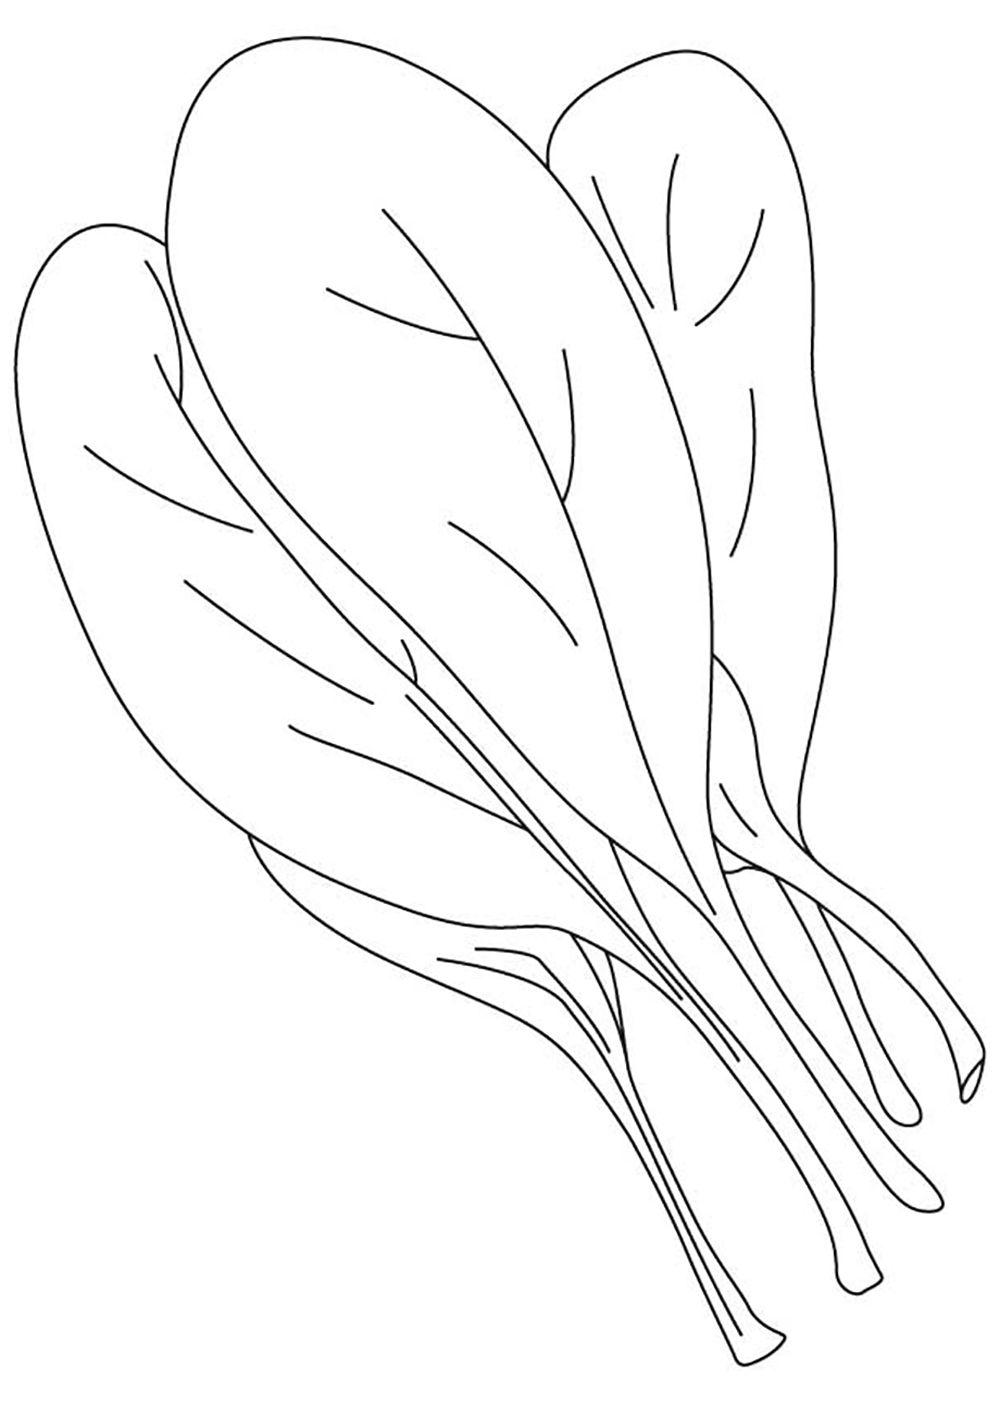 spinach leaf vegetable coloring pages pinterest spinach